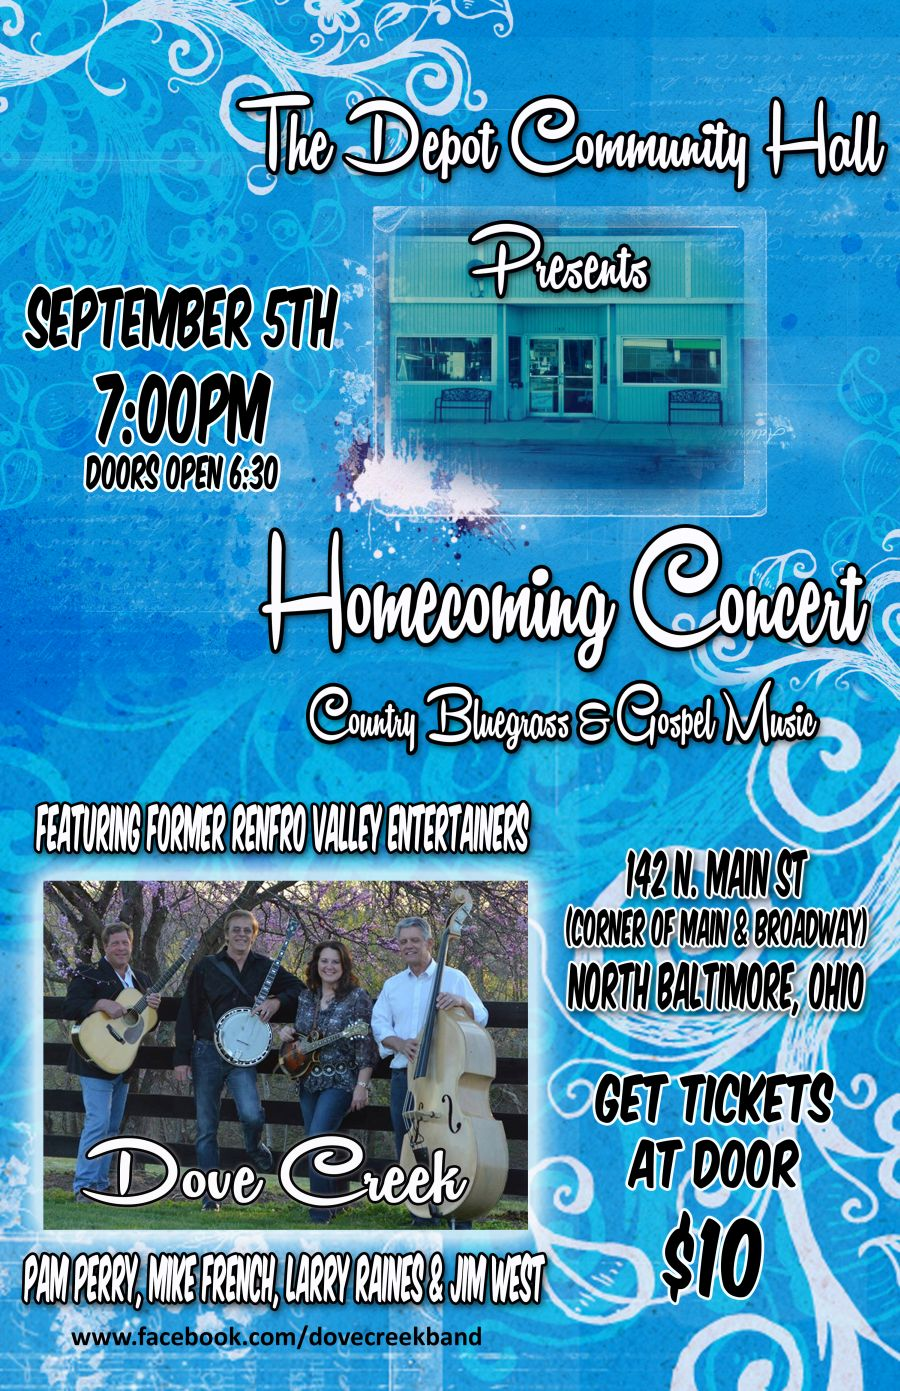 Pam Perry Combs Homecoming Concert at Roxies